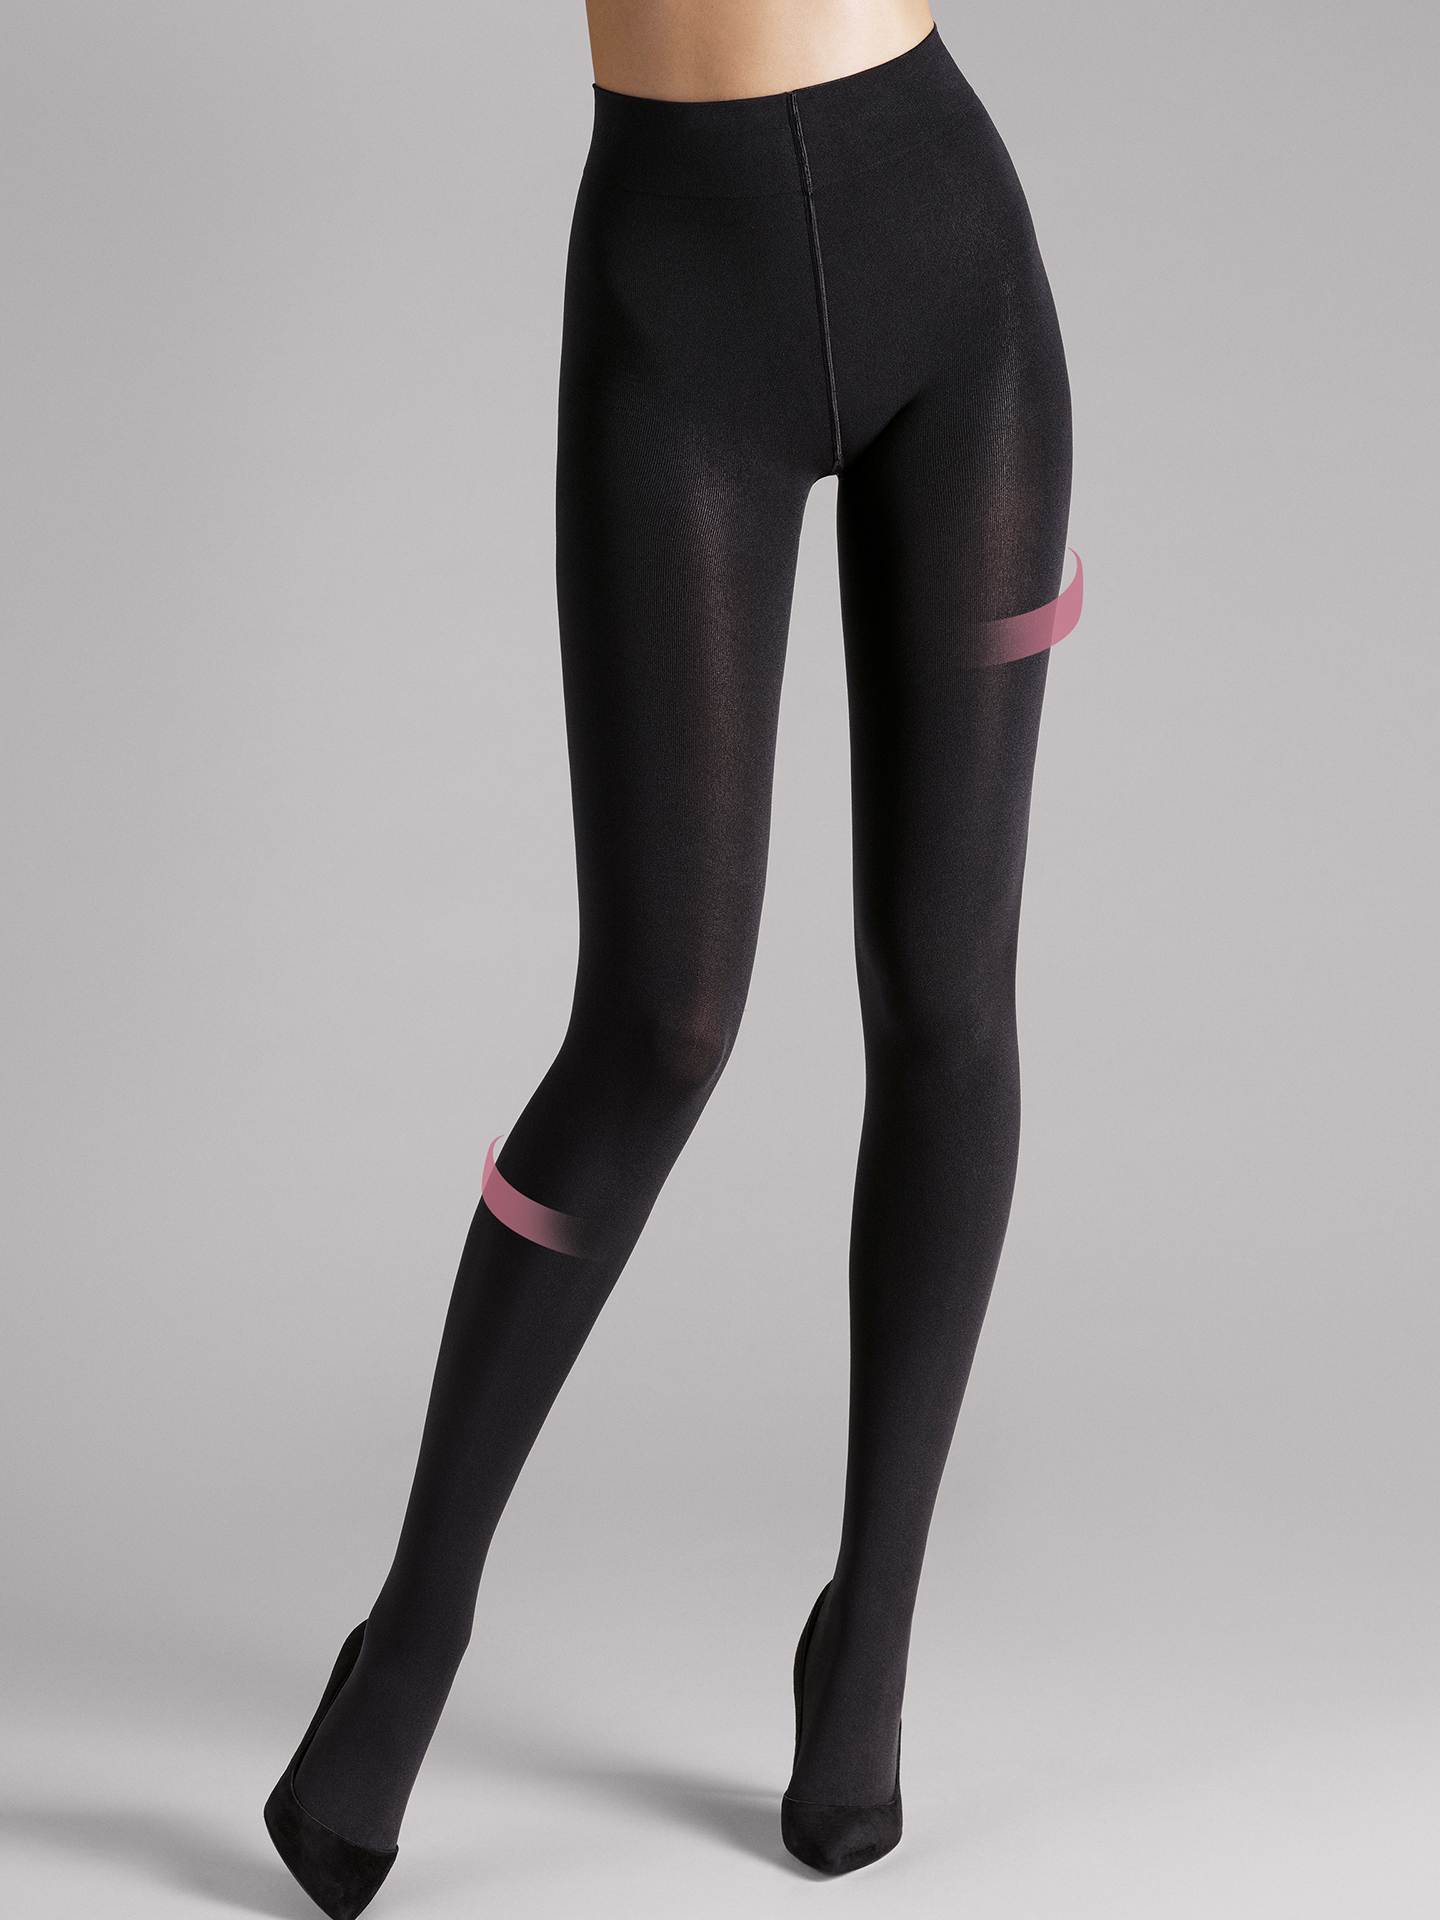 Ind. 100 Leg Support Tights - 7005 - M | Sportbekleidung > Sporthosen > Tights | Black | Wolford